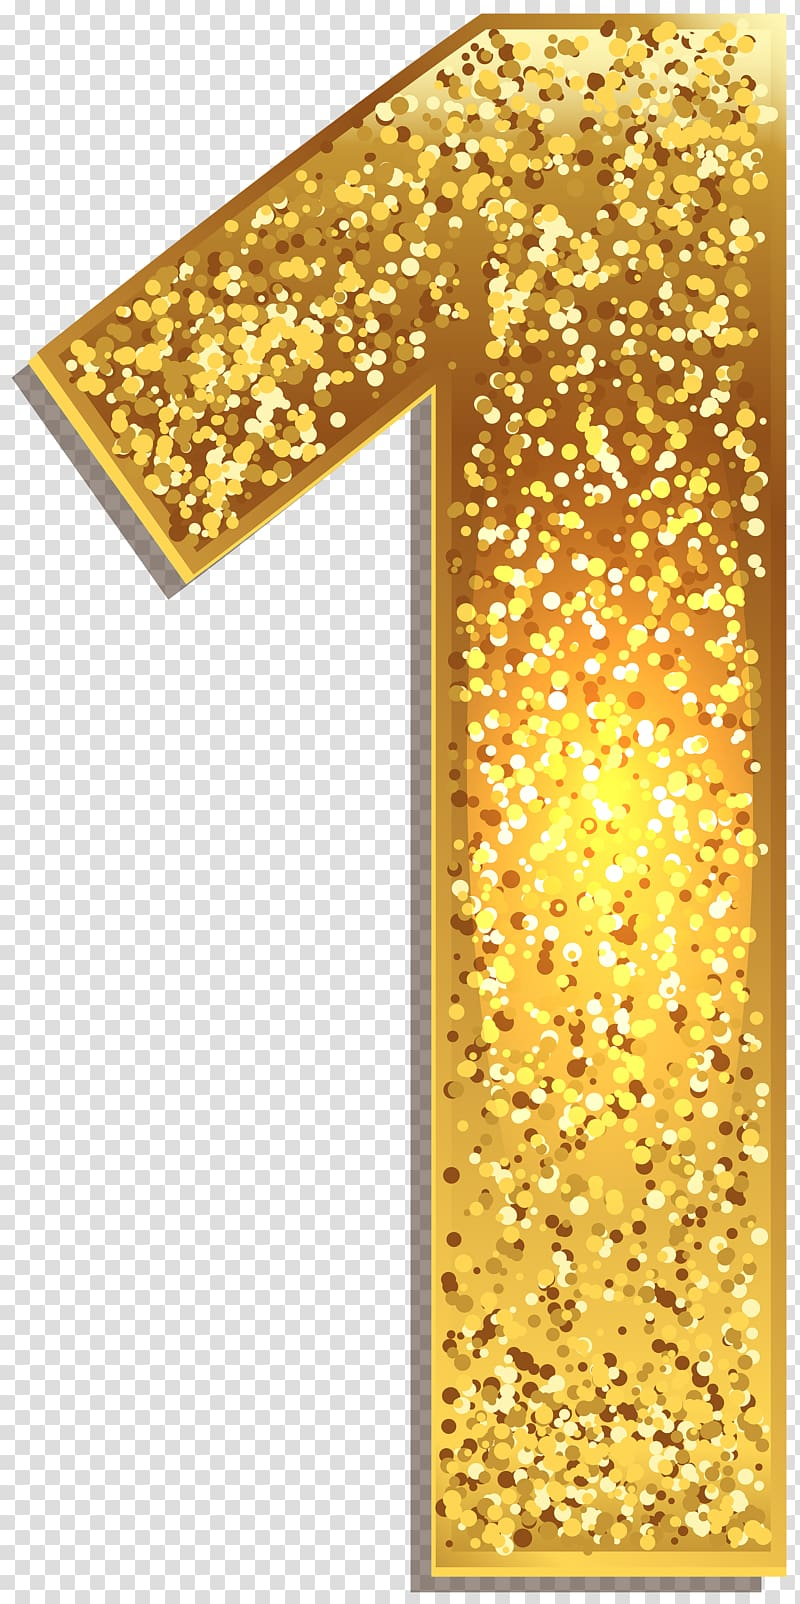 Brown 1 freestanding decor, Number One Gold Shining transparent.